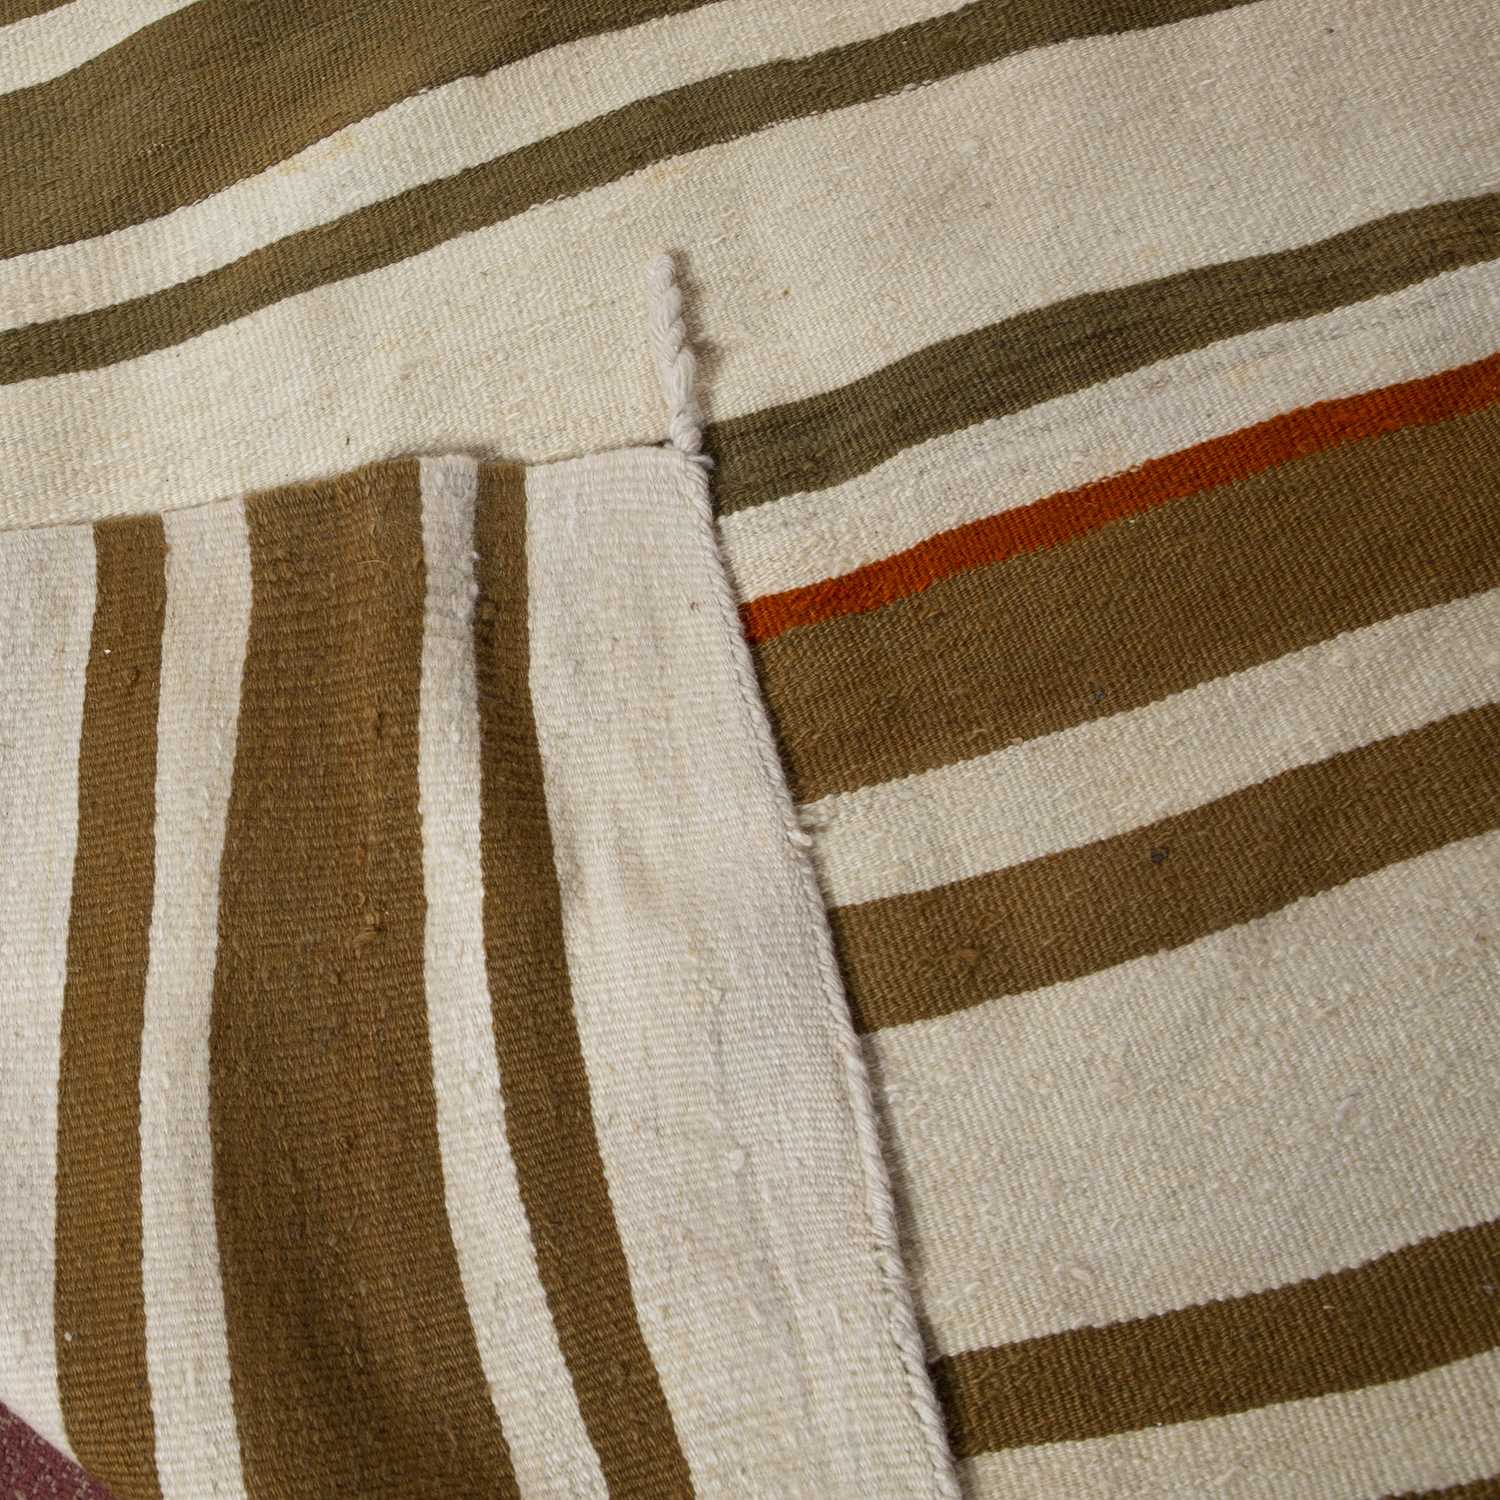 A Turkish plain weave rug with sage and white bands, 418 x 152cm - Image 4 of 4